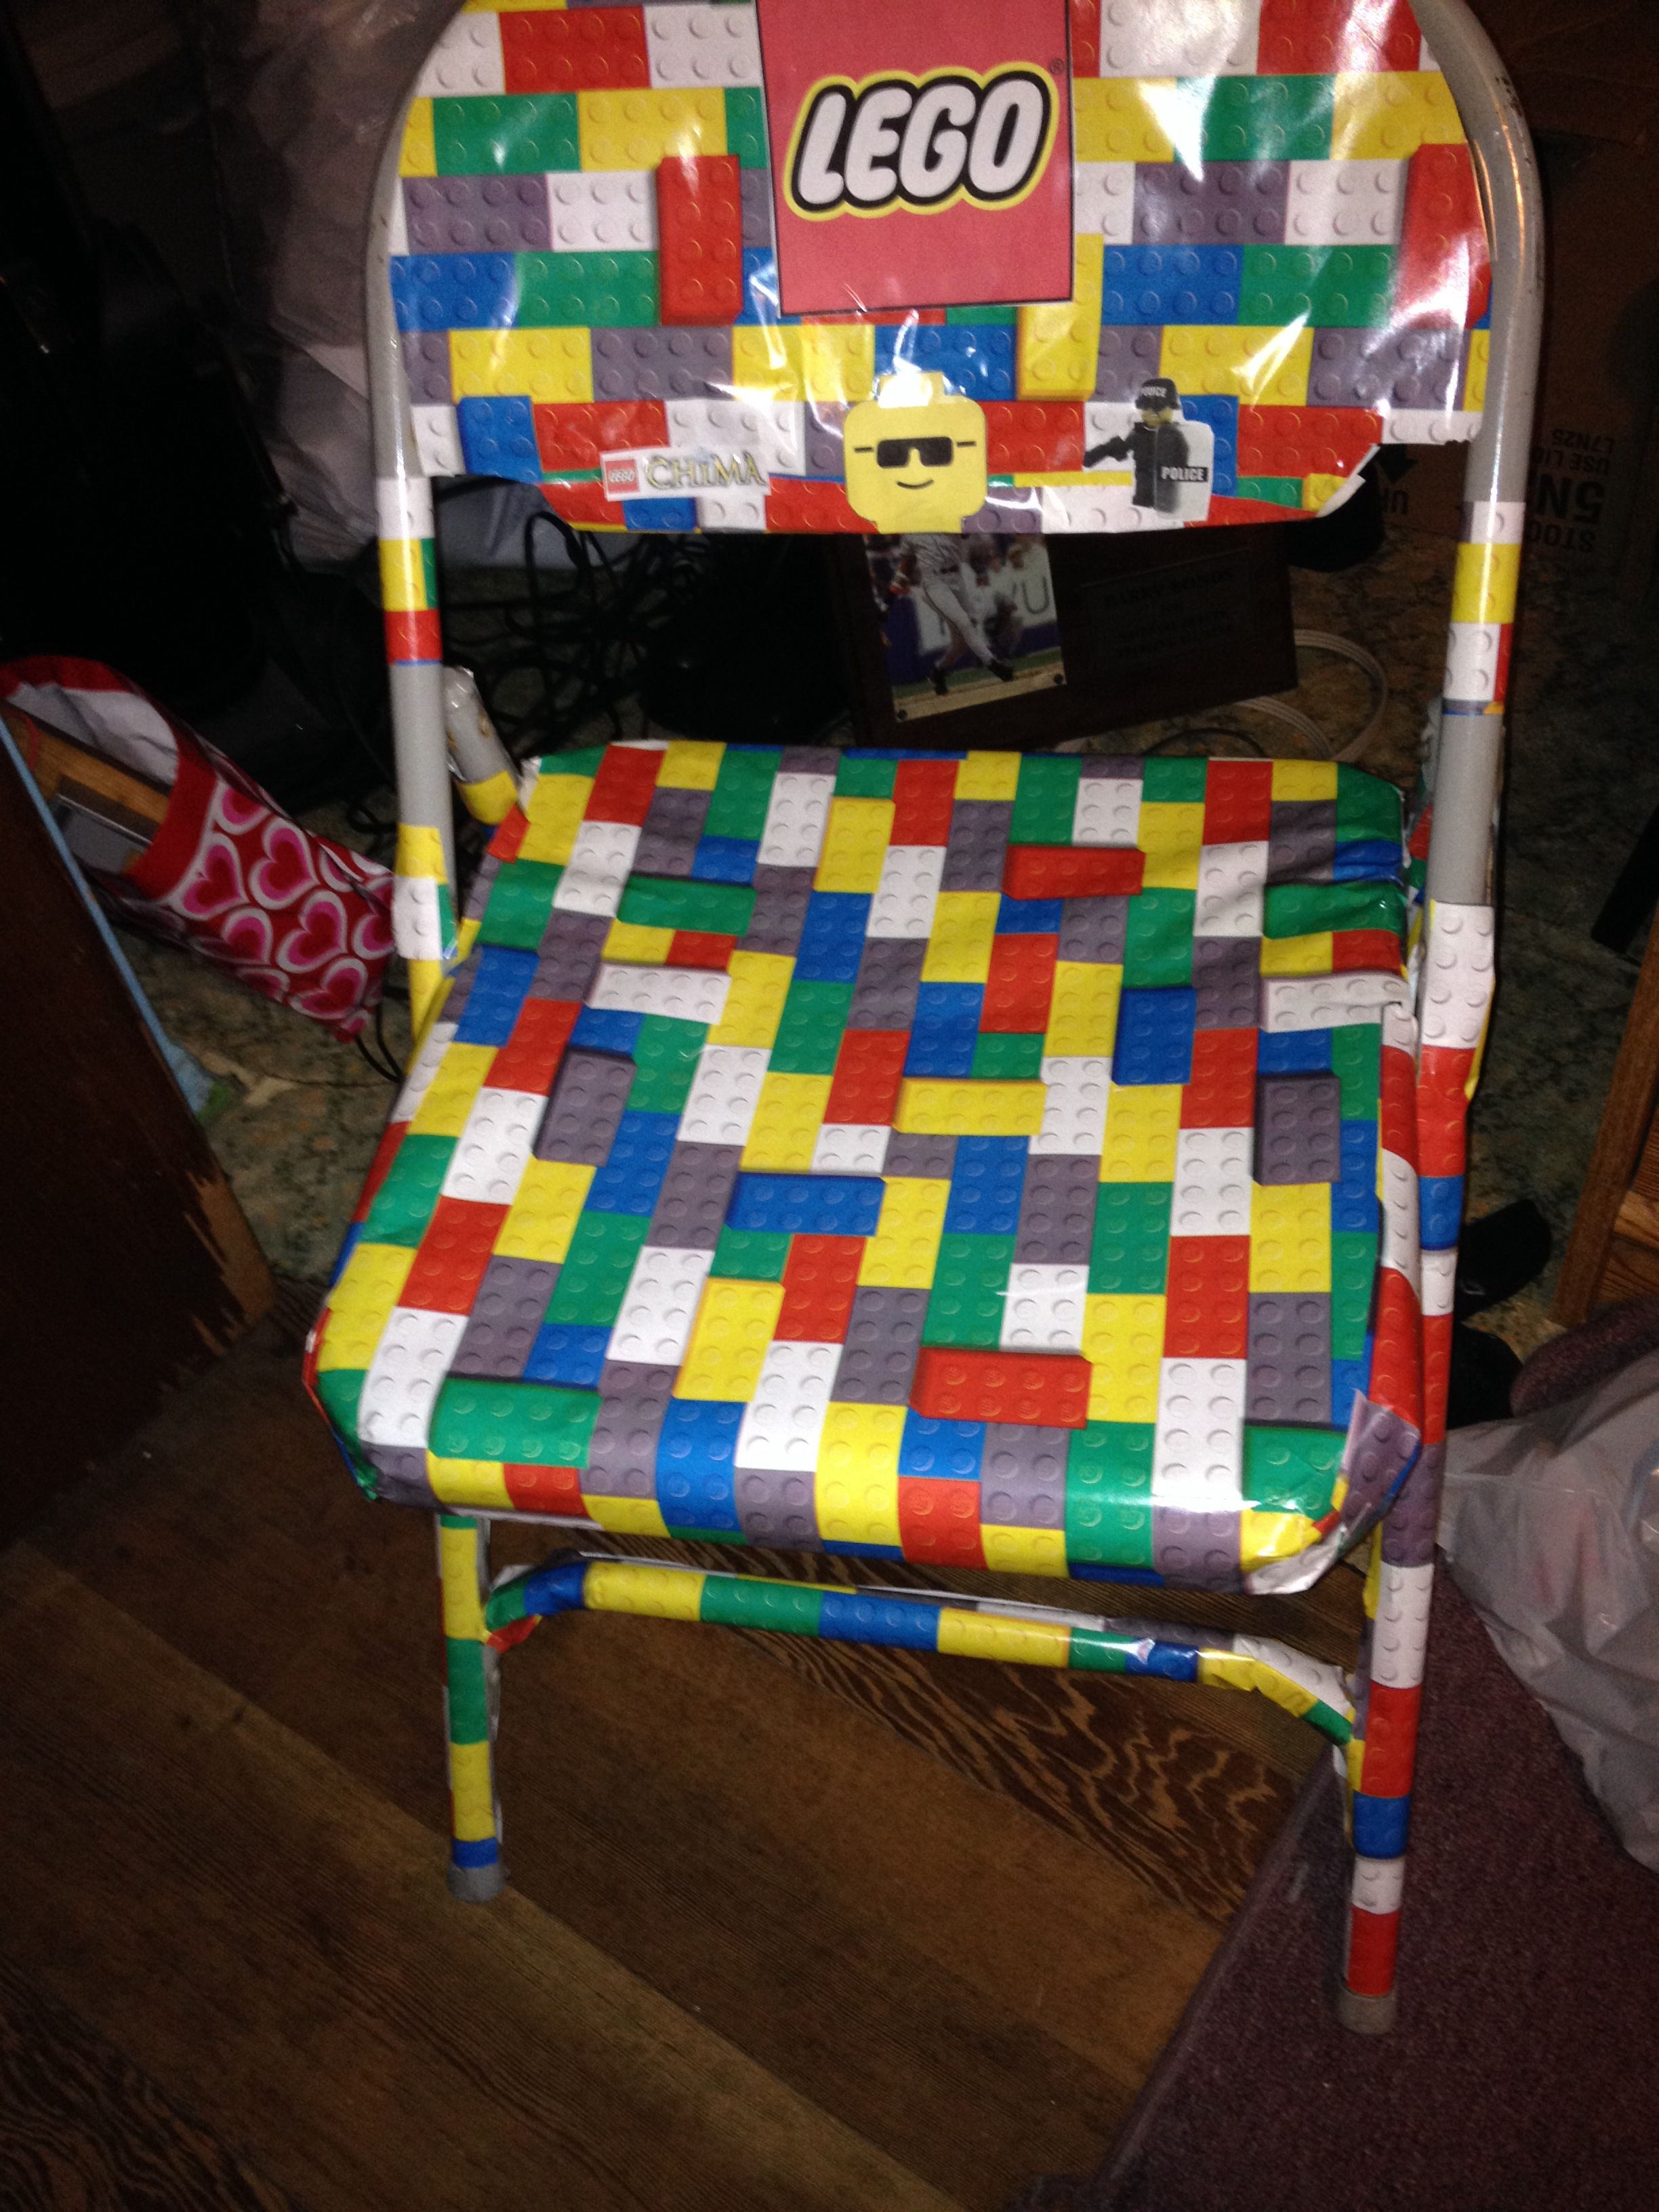 Lego Chair I Wrapped Lego Wrapping Paper Around The Chair And Then Printed Out Some Lego Icons Chair Decor High Chair